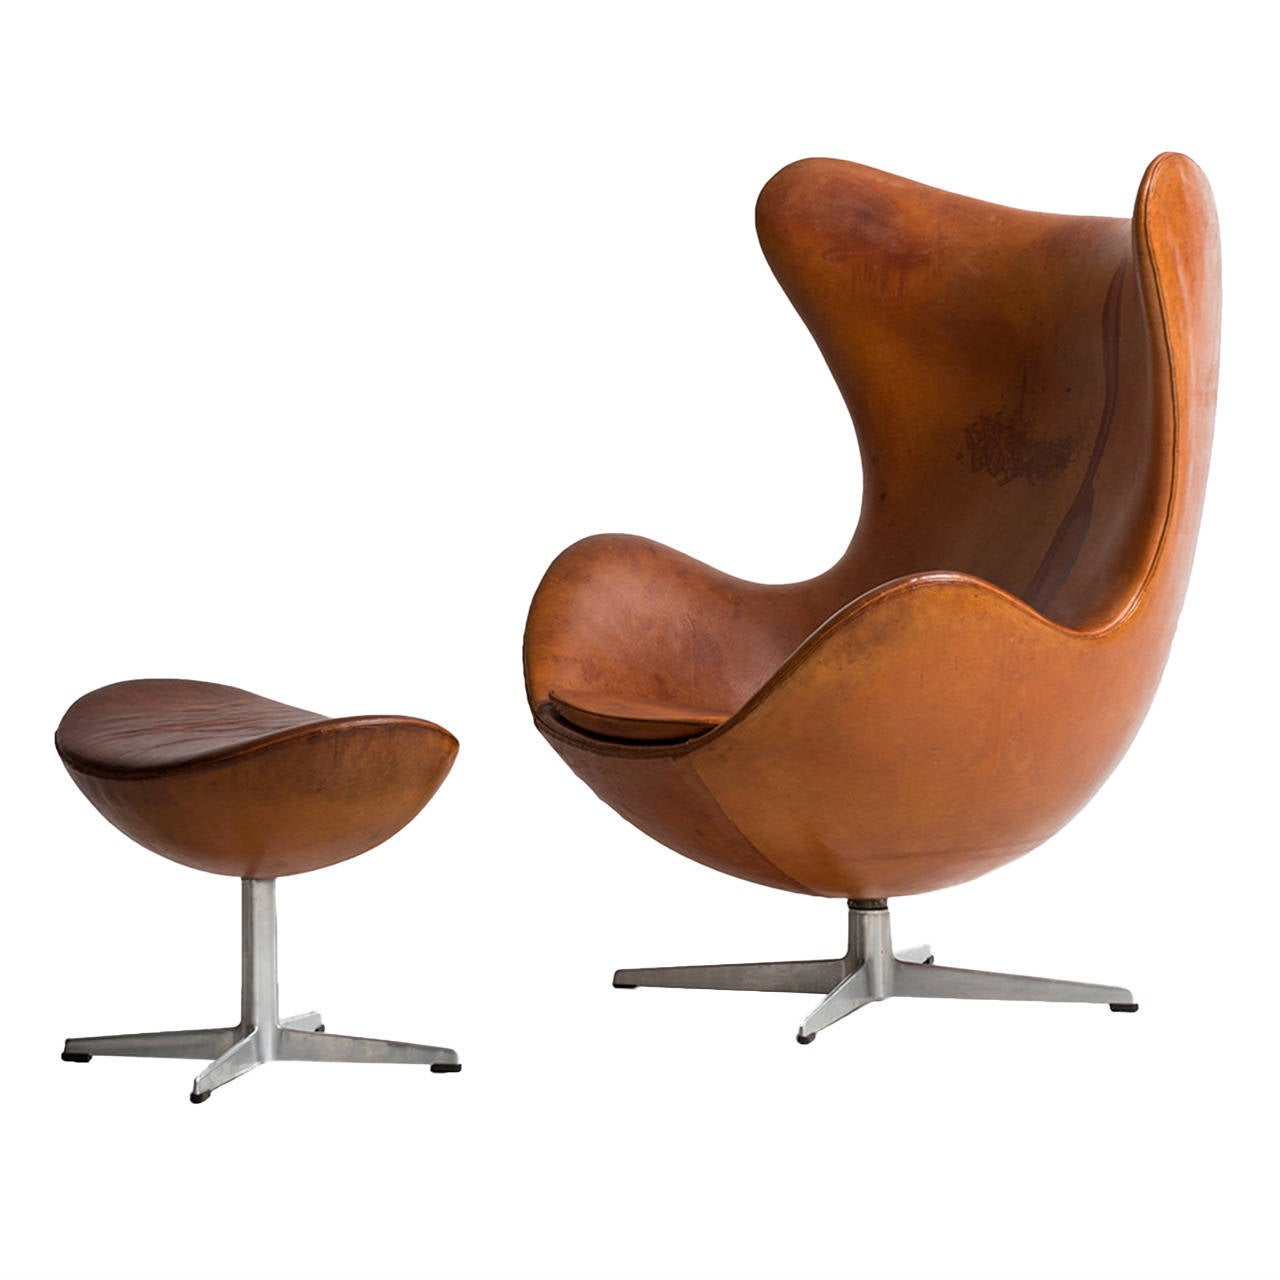 arne jacobsen egg chair in original cognac brown leather by fritz hansen for sale at 1stdibs